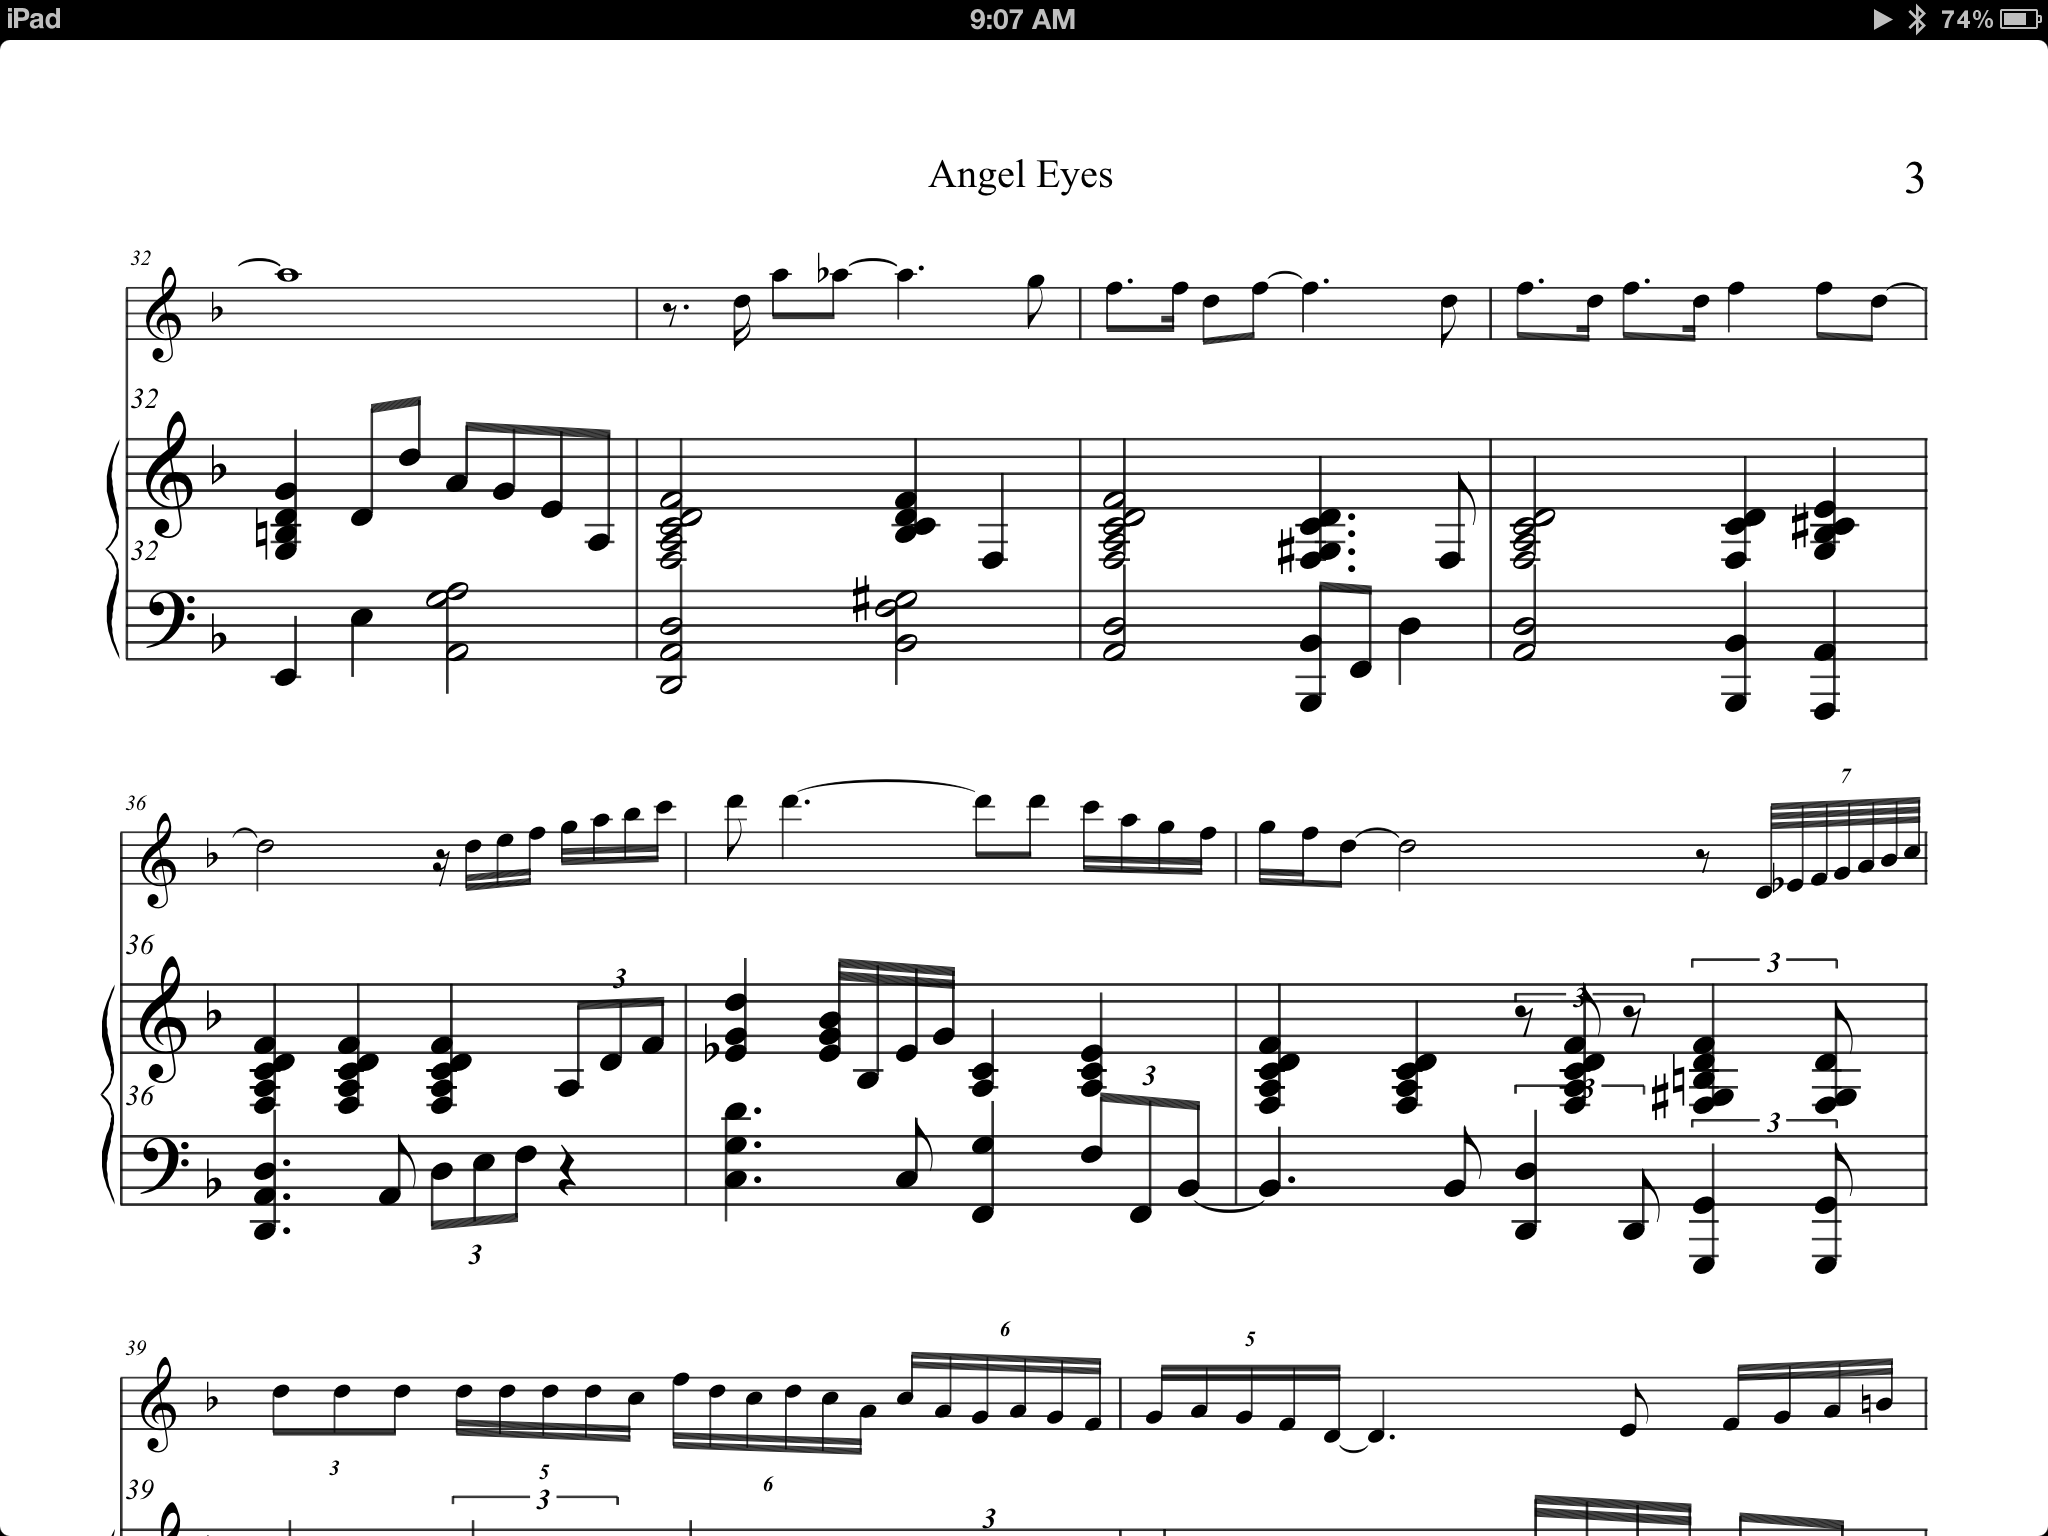 Going digital for musicians a guide to working with sheet music music on the ipad using forscore biocorpaavc Images